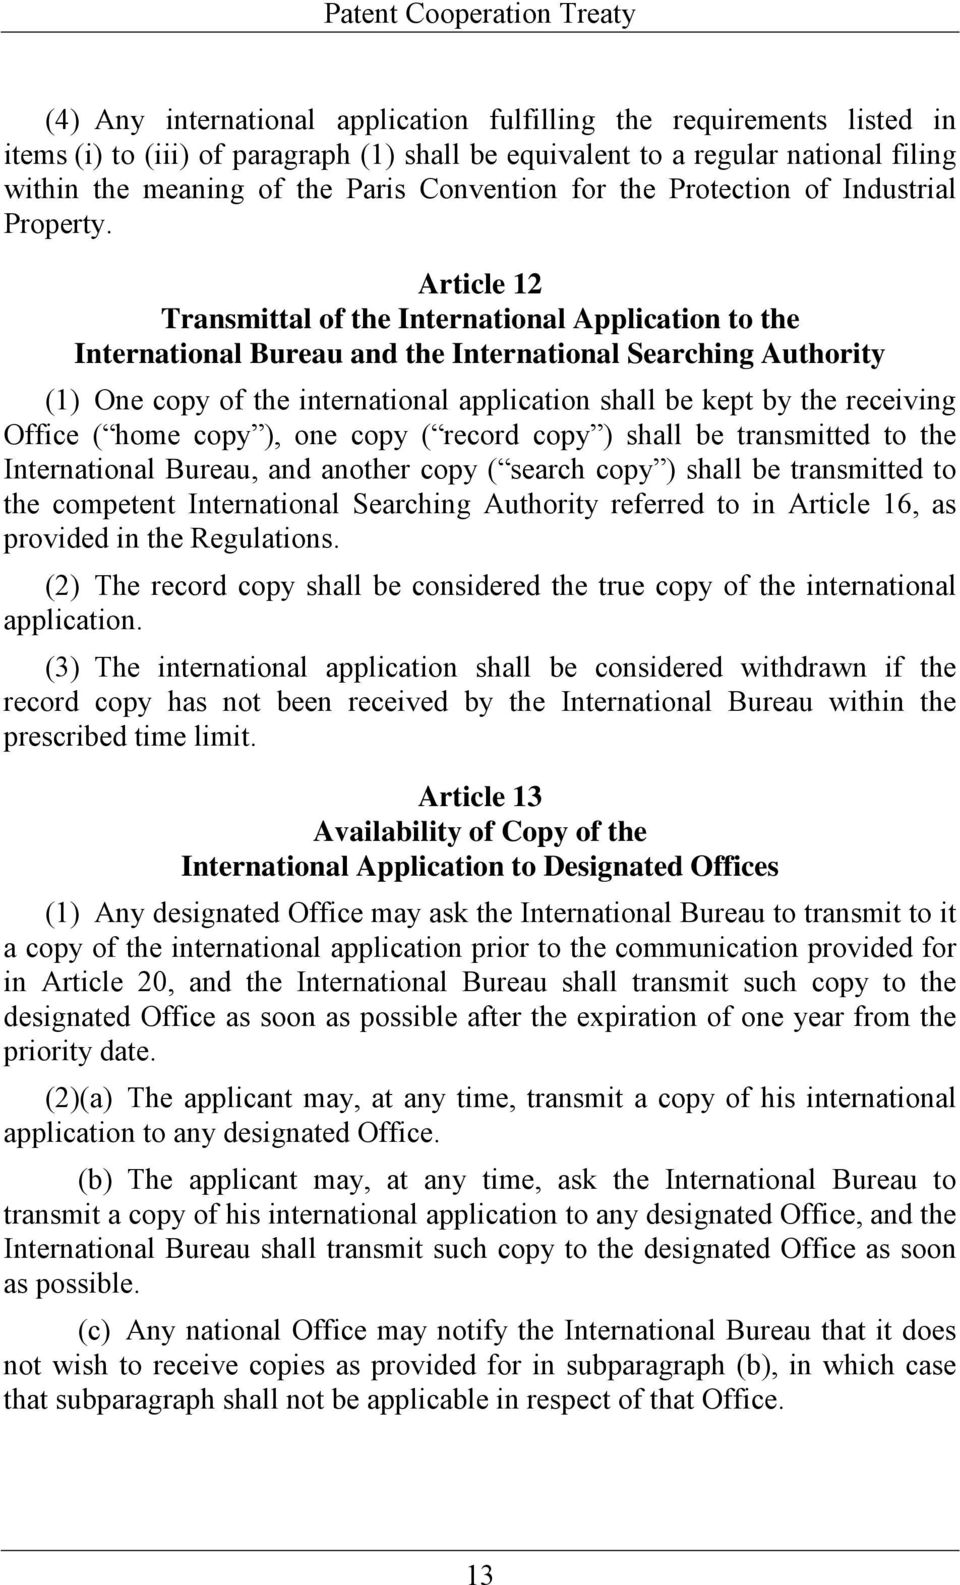 Article 12 Transmittal of the International Application to the International Bureau and the International Searching Authority (1) One copy of the international application shall be kept by the